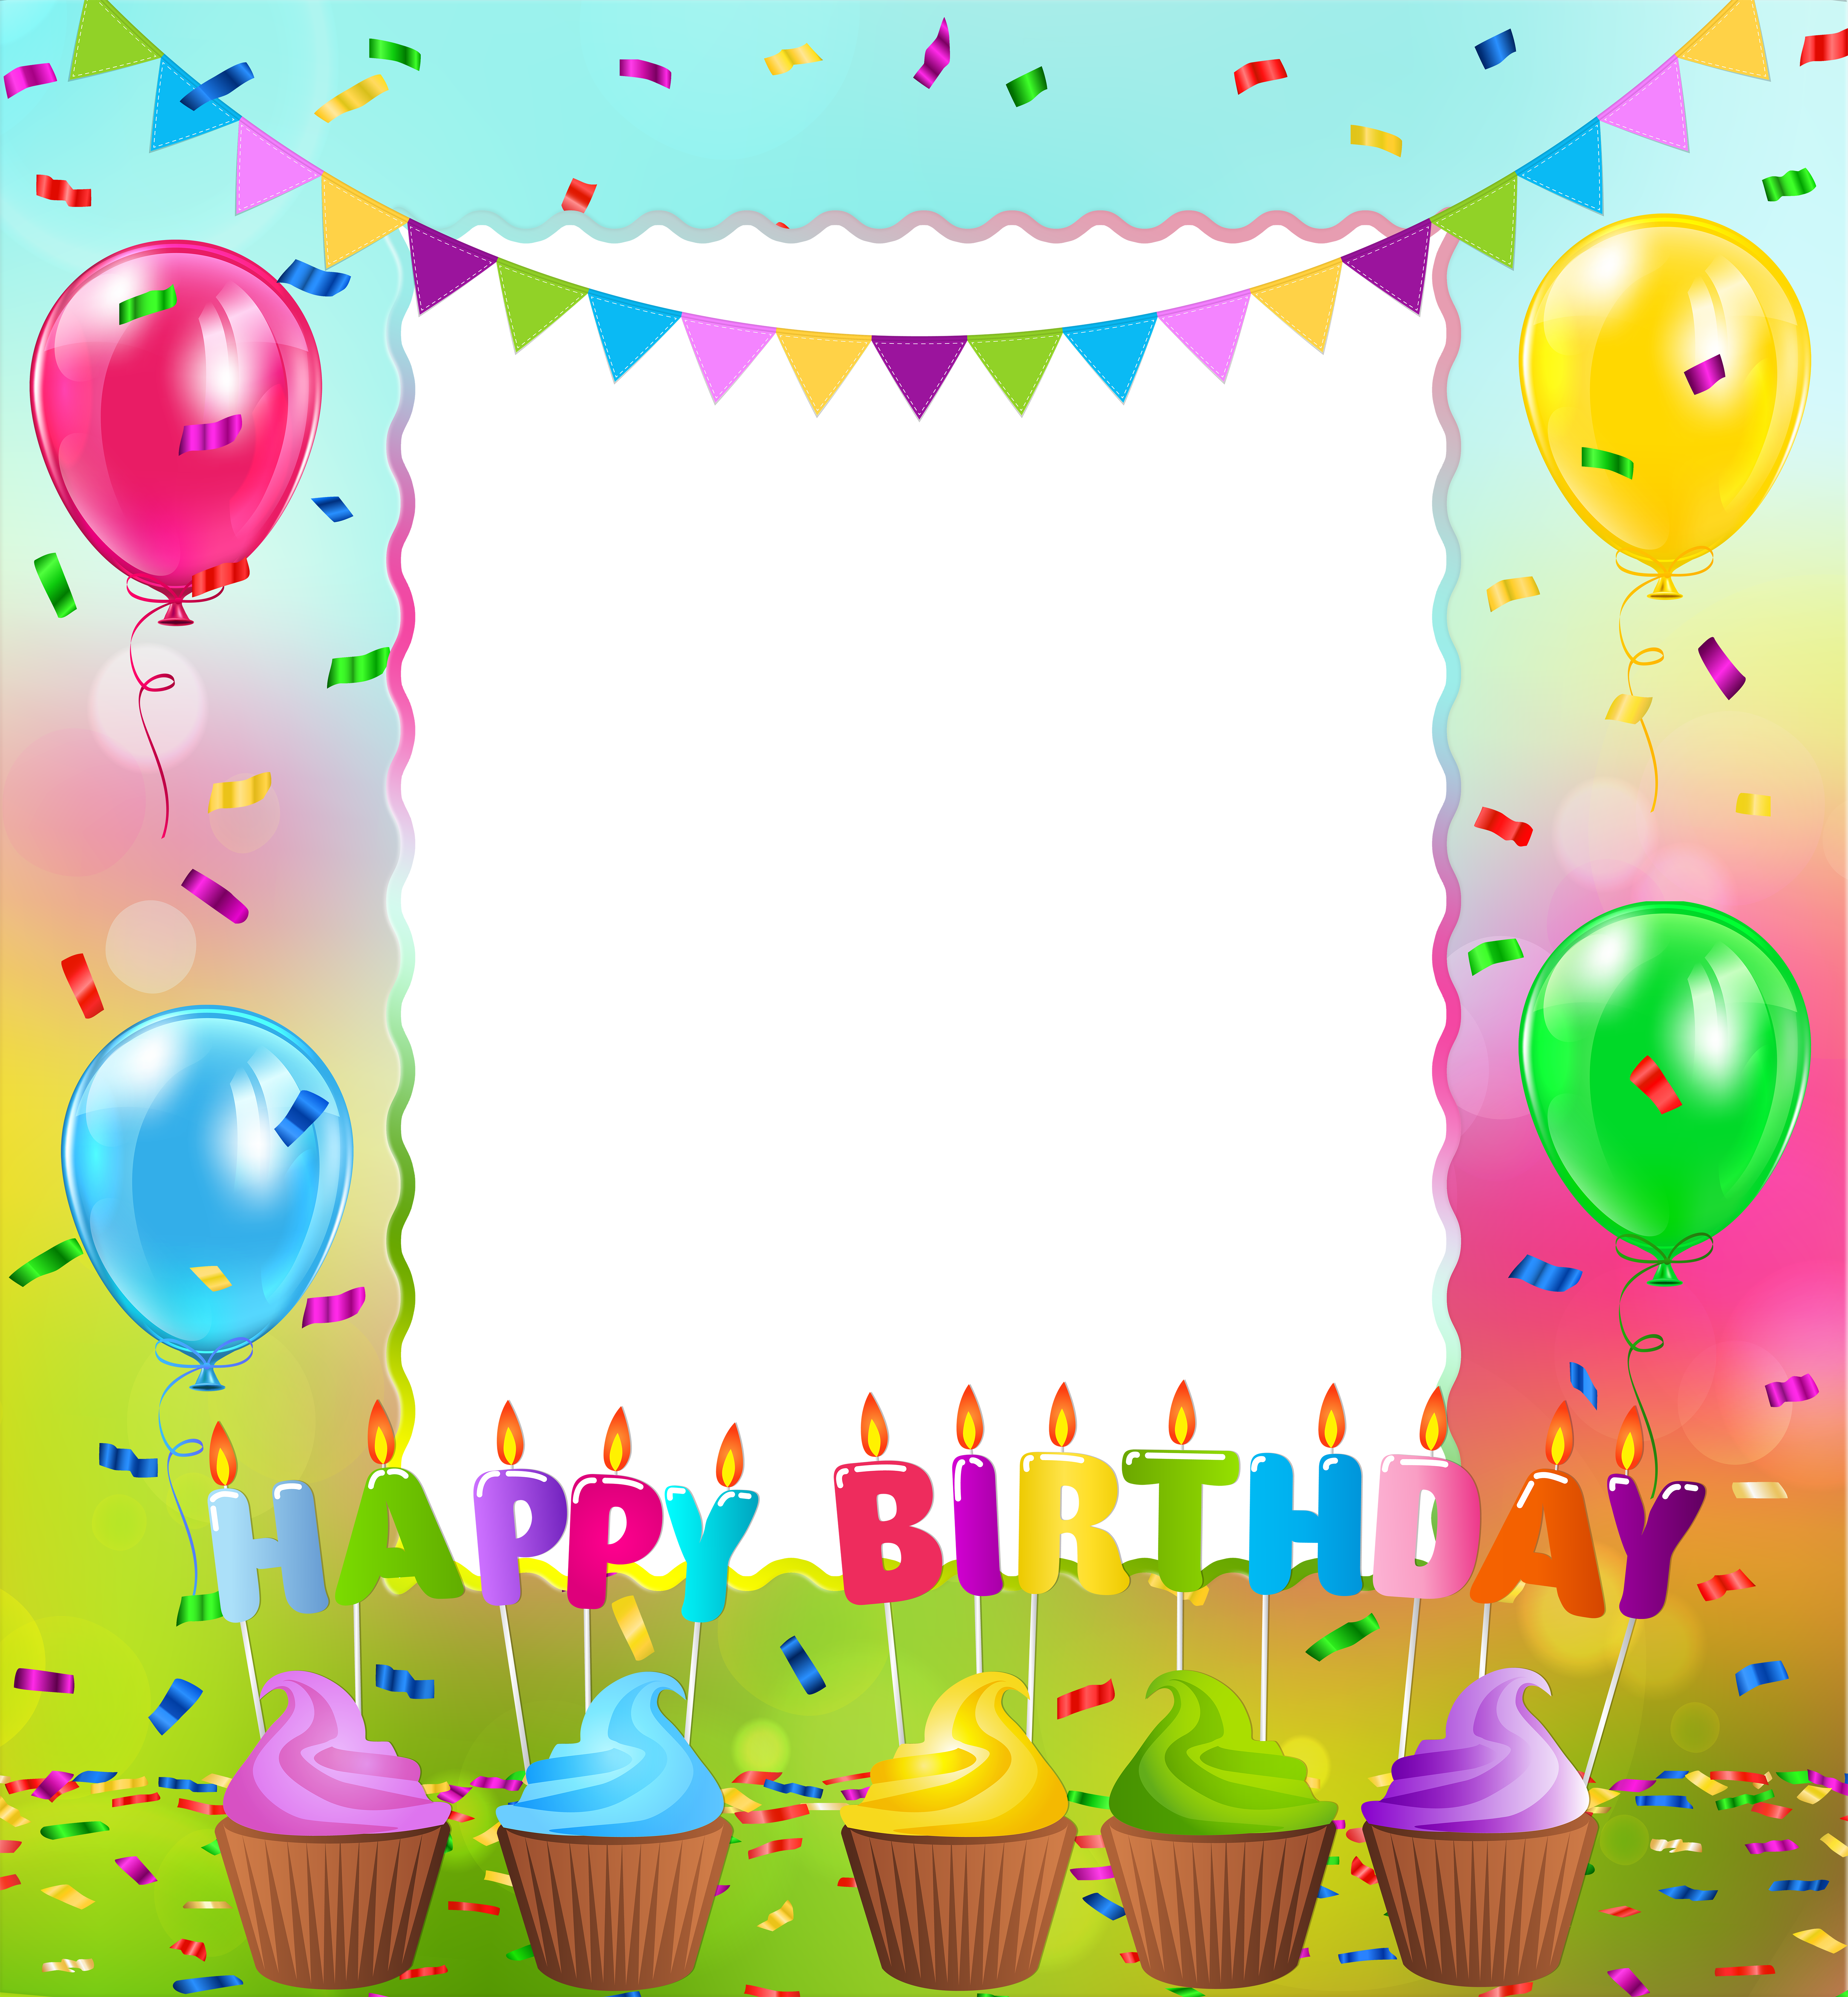 Birthday picture frame clipart banner royalty free download Happy Birthday PNG Frame | Gallery Yopriceville - High-Quality ... banner royalty free download